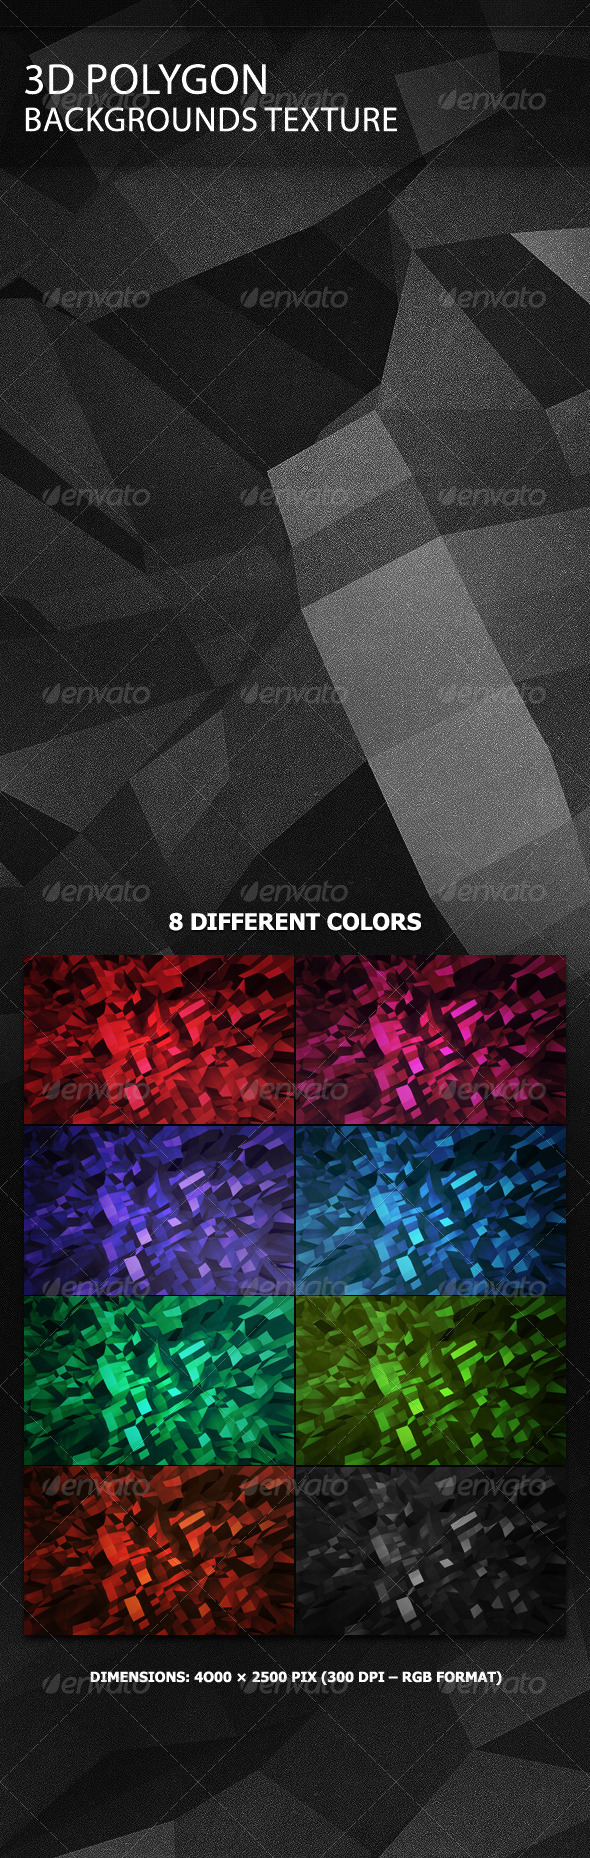 GraphicRiver 3D Polygon Backgrounds Texture 2800985